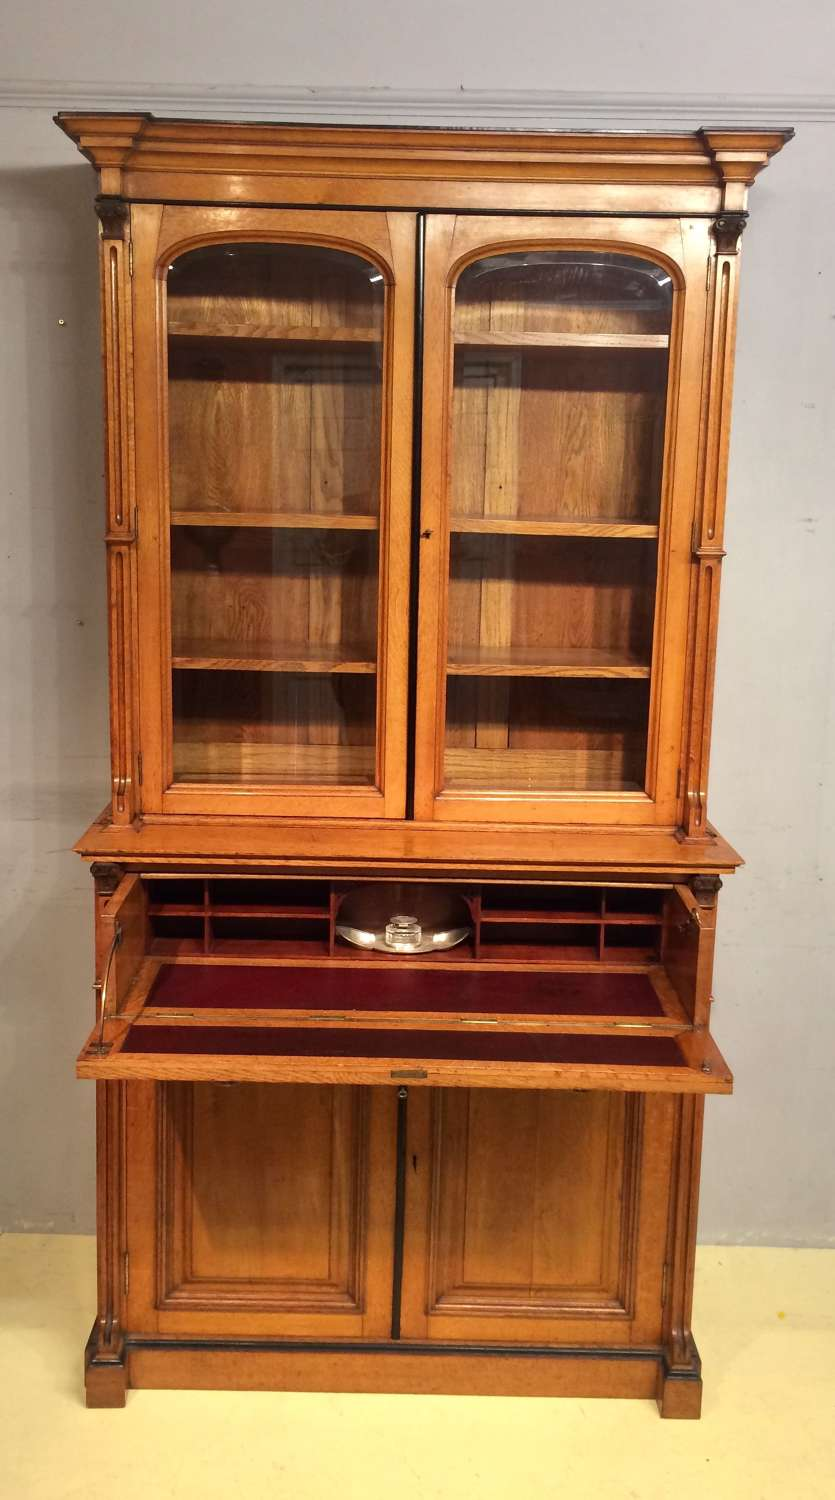 19th century pale oak secretaire bookcase.